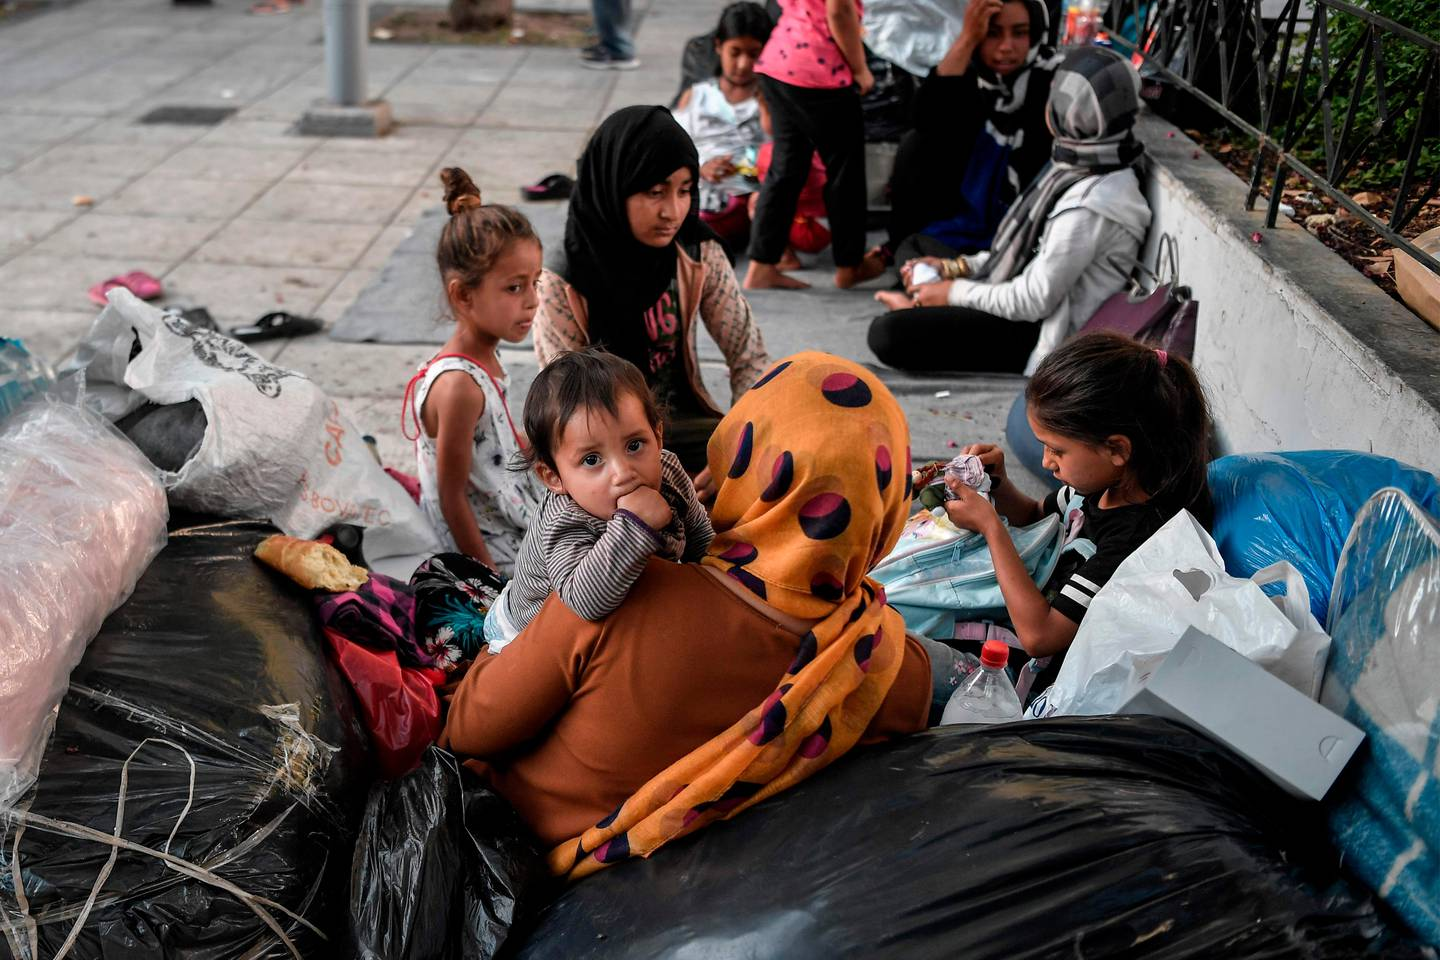 A child looks on as Afghan families who arrived, from Moria camp on the island of Lesbos camp, at an central Athens square on June 14, 2020 after receiving a blue stamp which allowed them to travel to the mainland. - At least 66 refugees, who arrived from the island after their asylum applications where approved, camp on the square as they have no place to stay in Athens. (Photo by Louisa GOULIAMAKI / AFP)